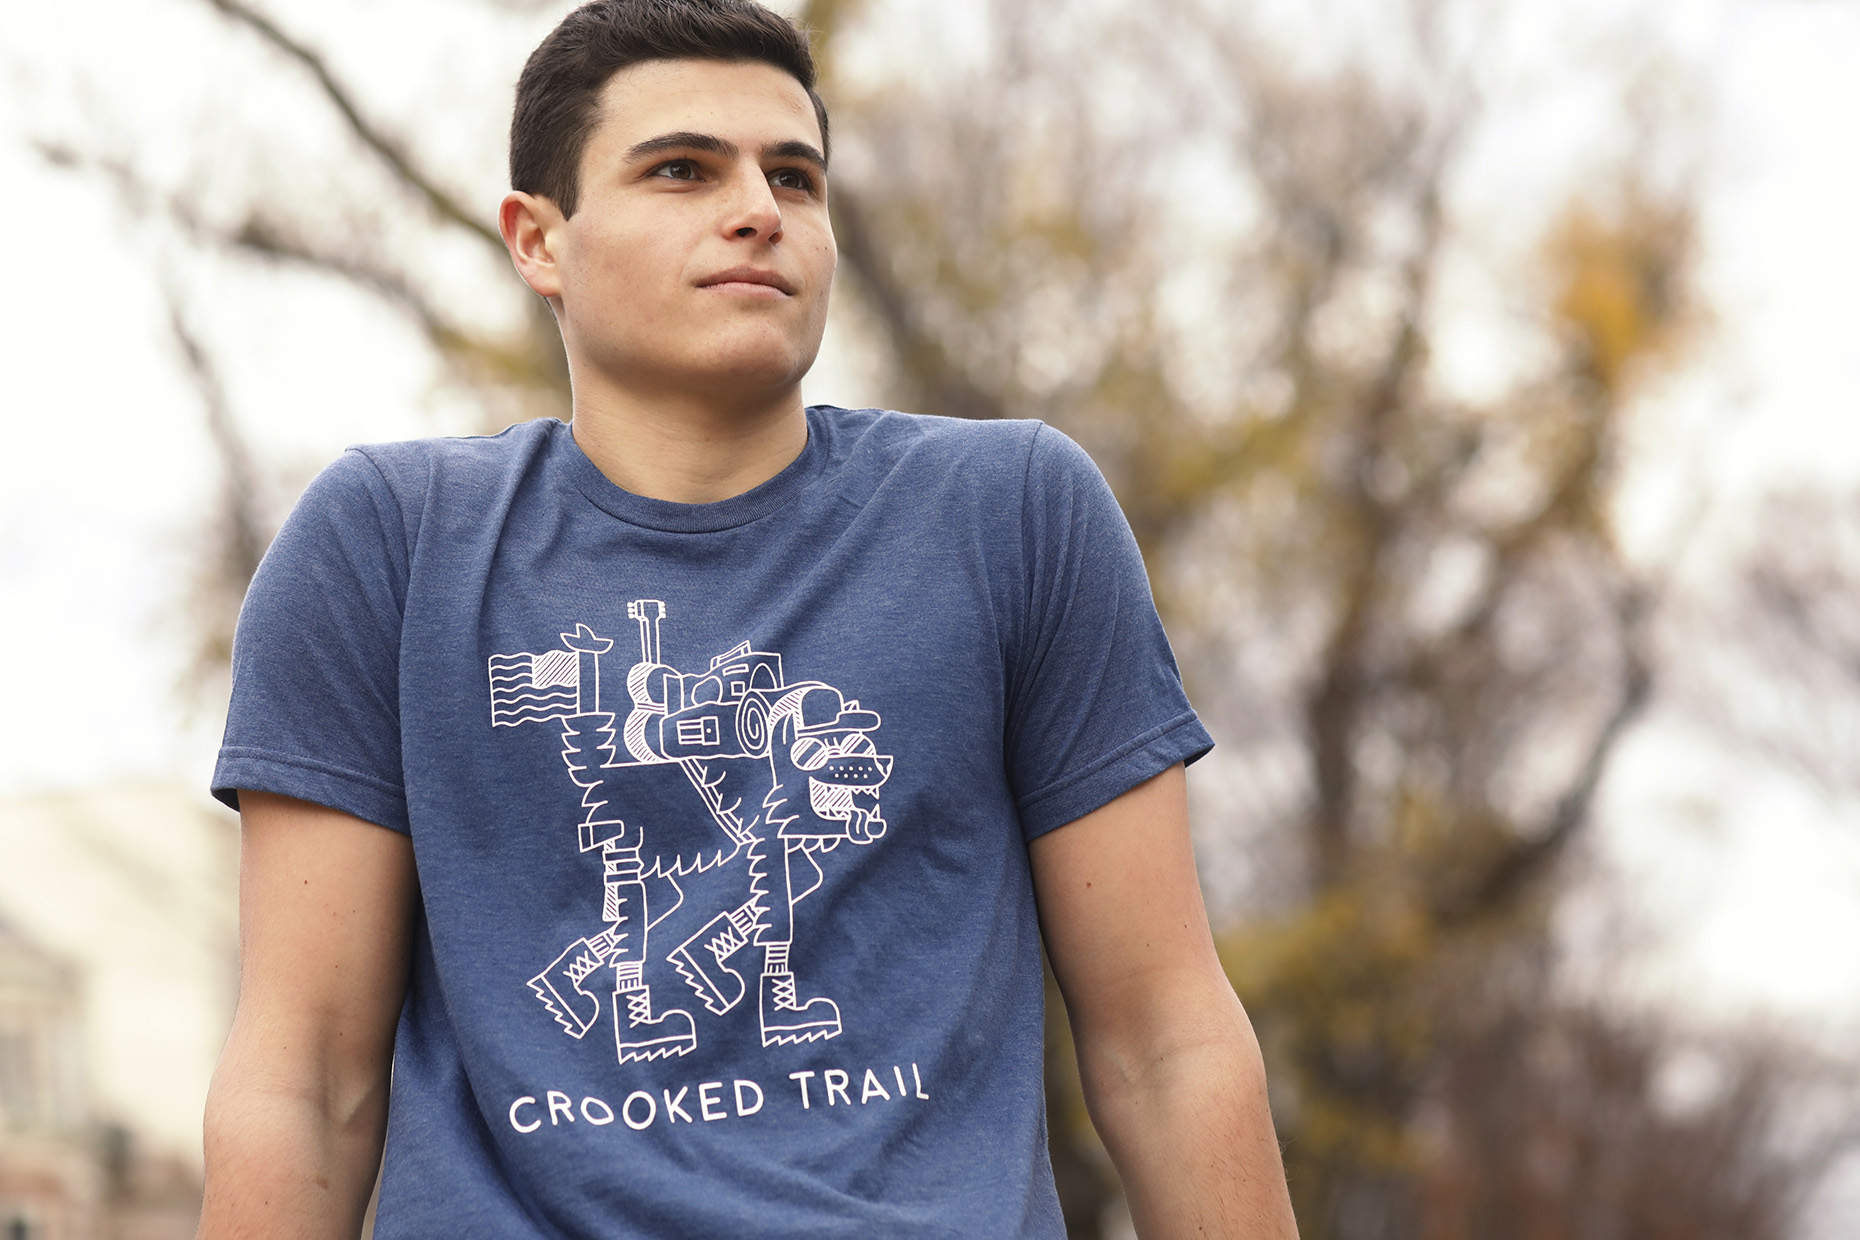 Male Model in Crooked Trail Apparel.